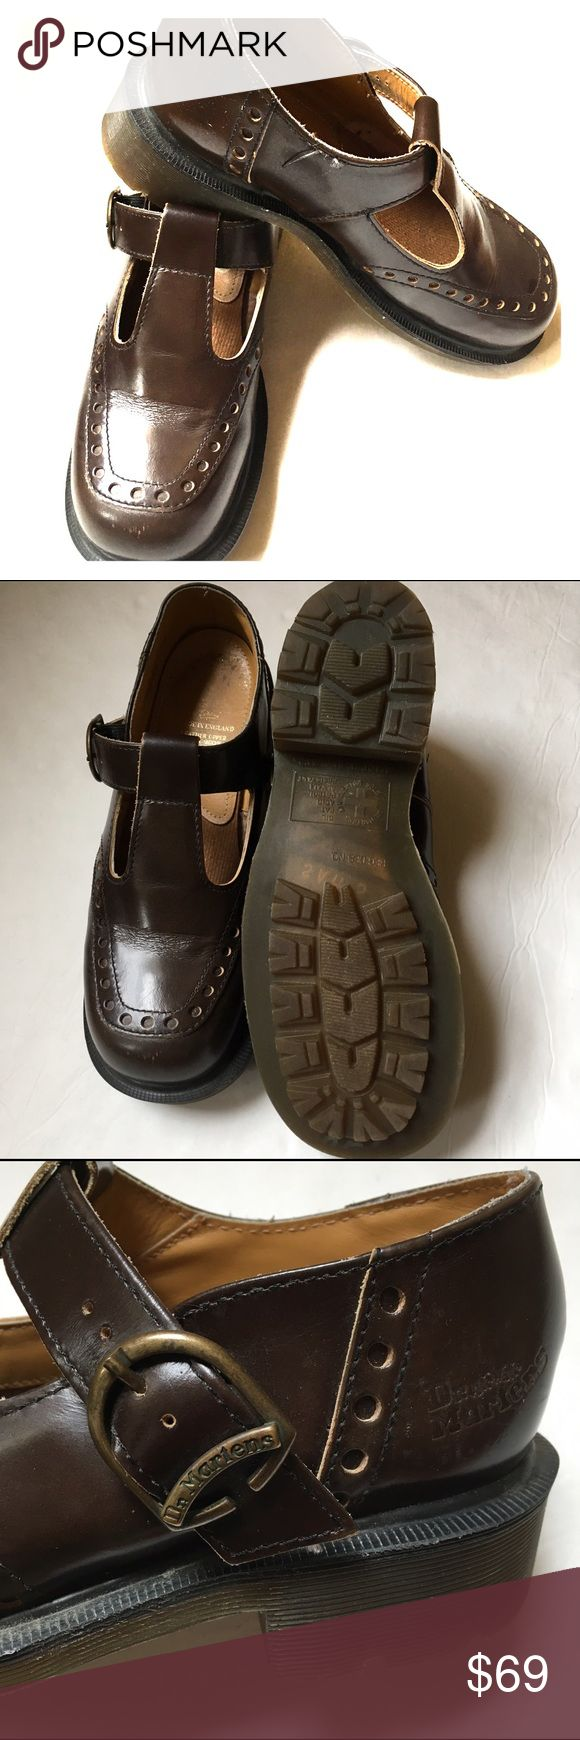 ⭐️ Dr. Martens brown shoes Excellent condition. Dark brown Mary Jane style with buckles on side.  Made in England. UK Size 5.  I am a true size 7 1/2 and it fits me perfect.  Leather upper air cushion man made soles. Dr. Martens Shoes